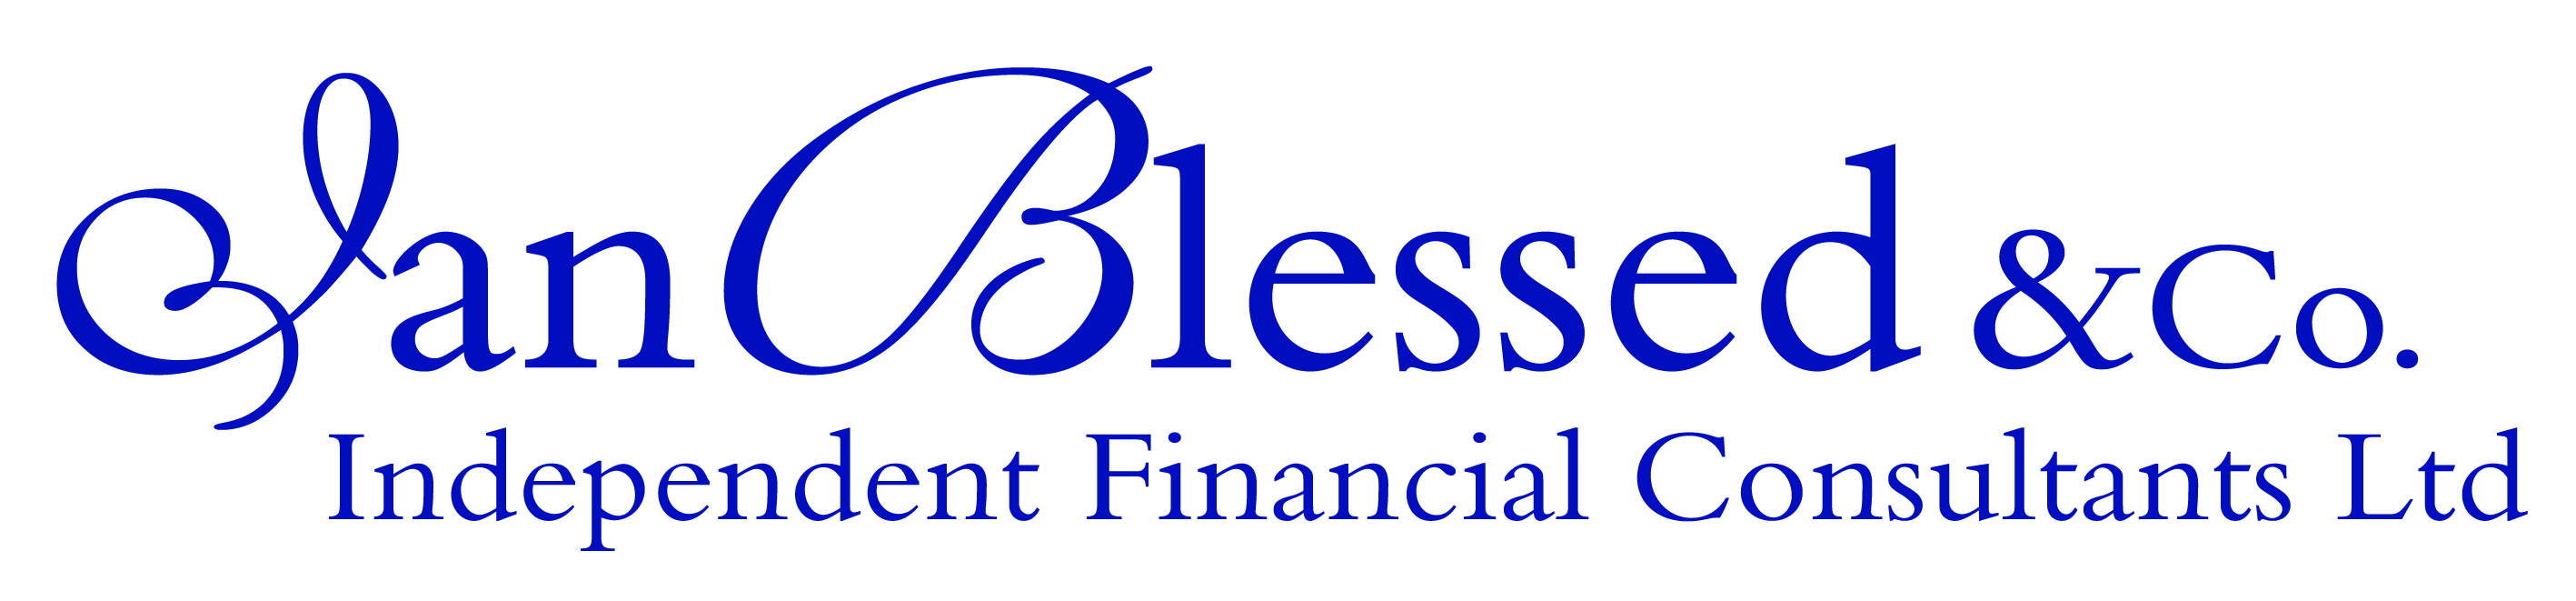 Ian Blessed & Co Independent Financial Consultants Ltd Logo